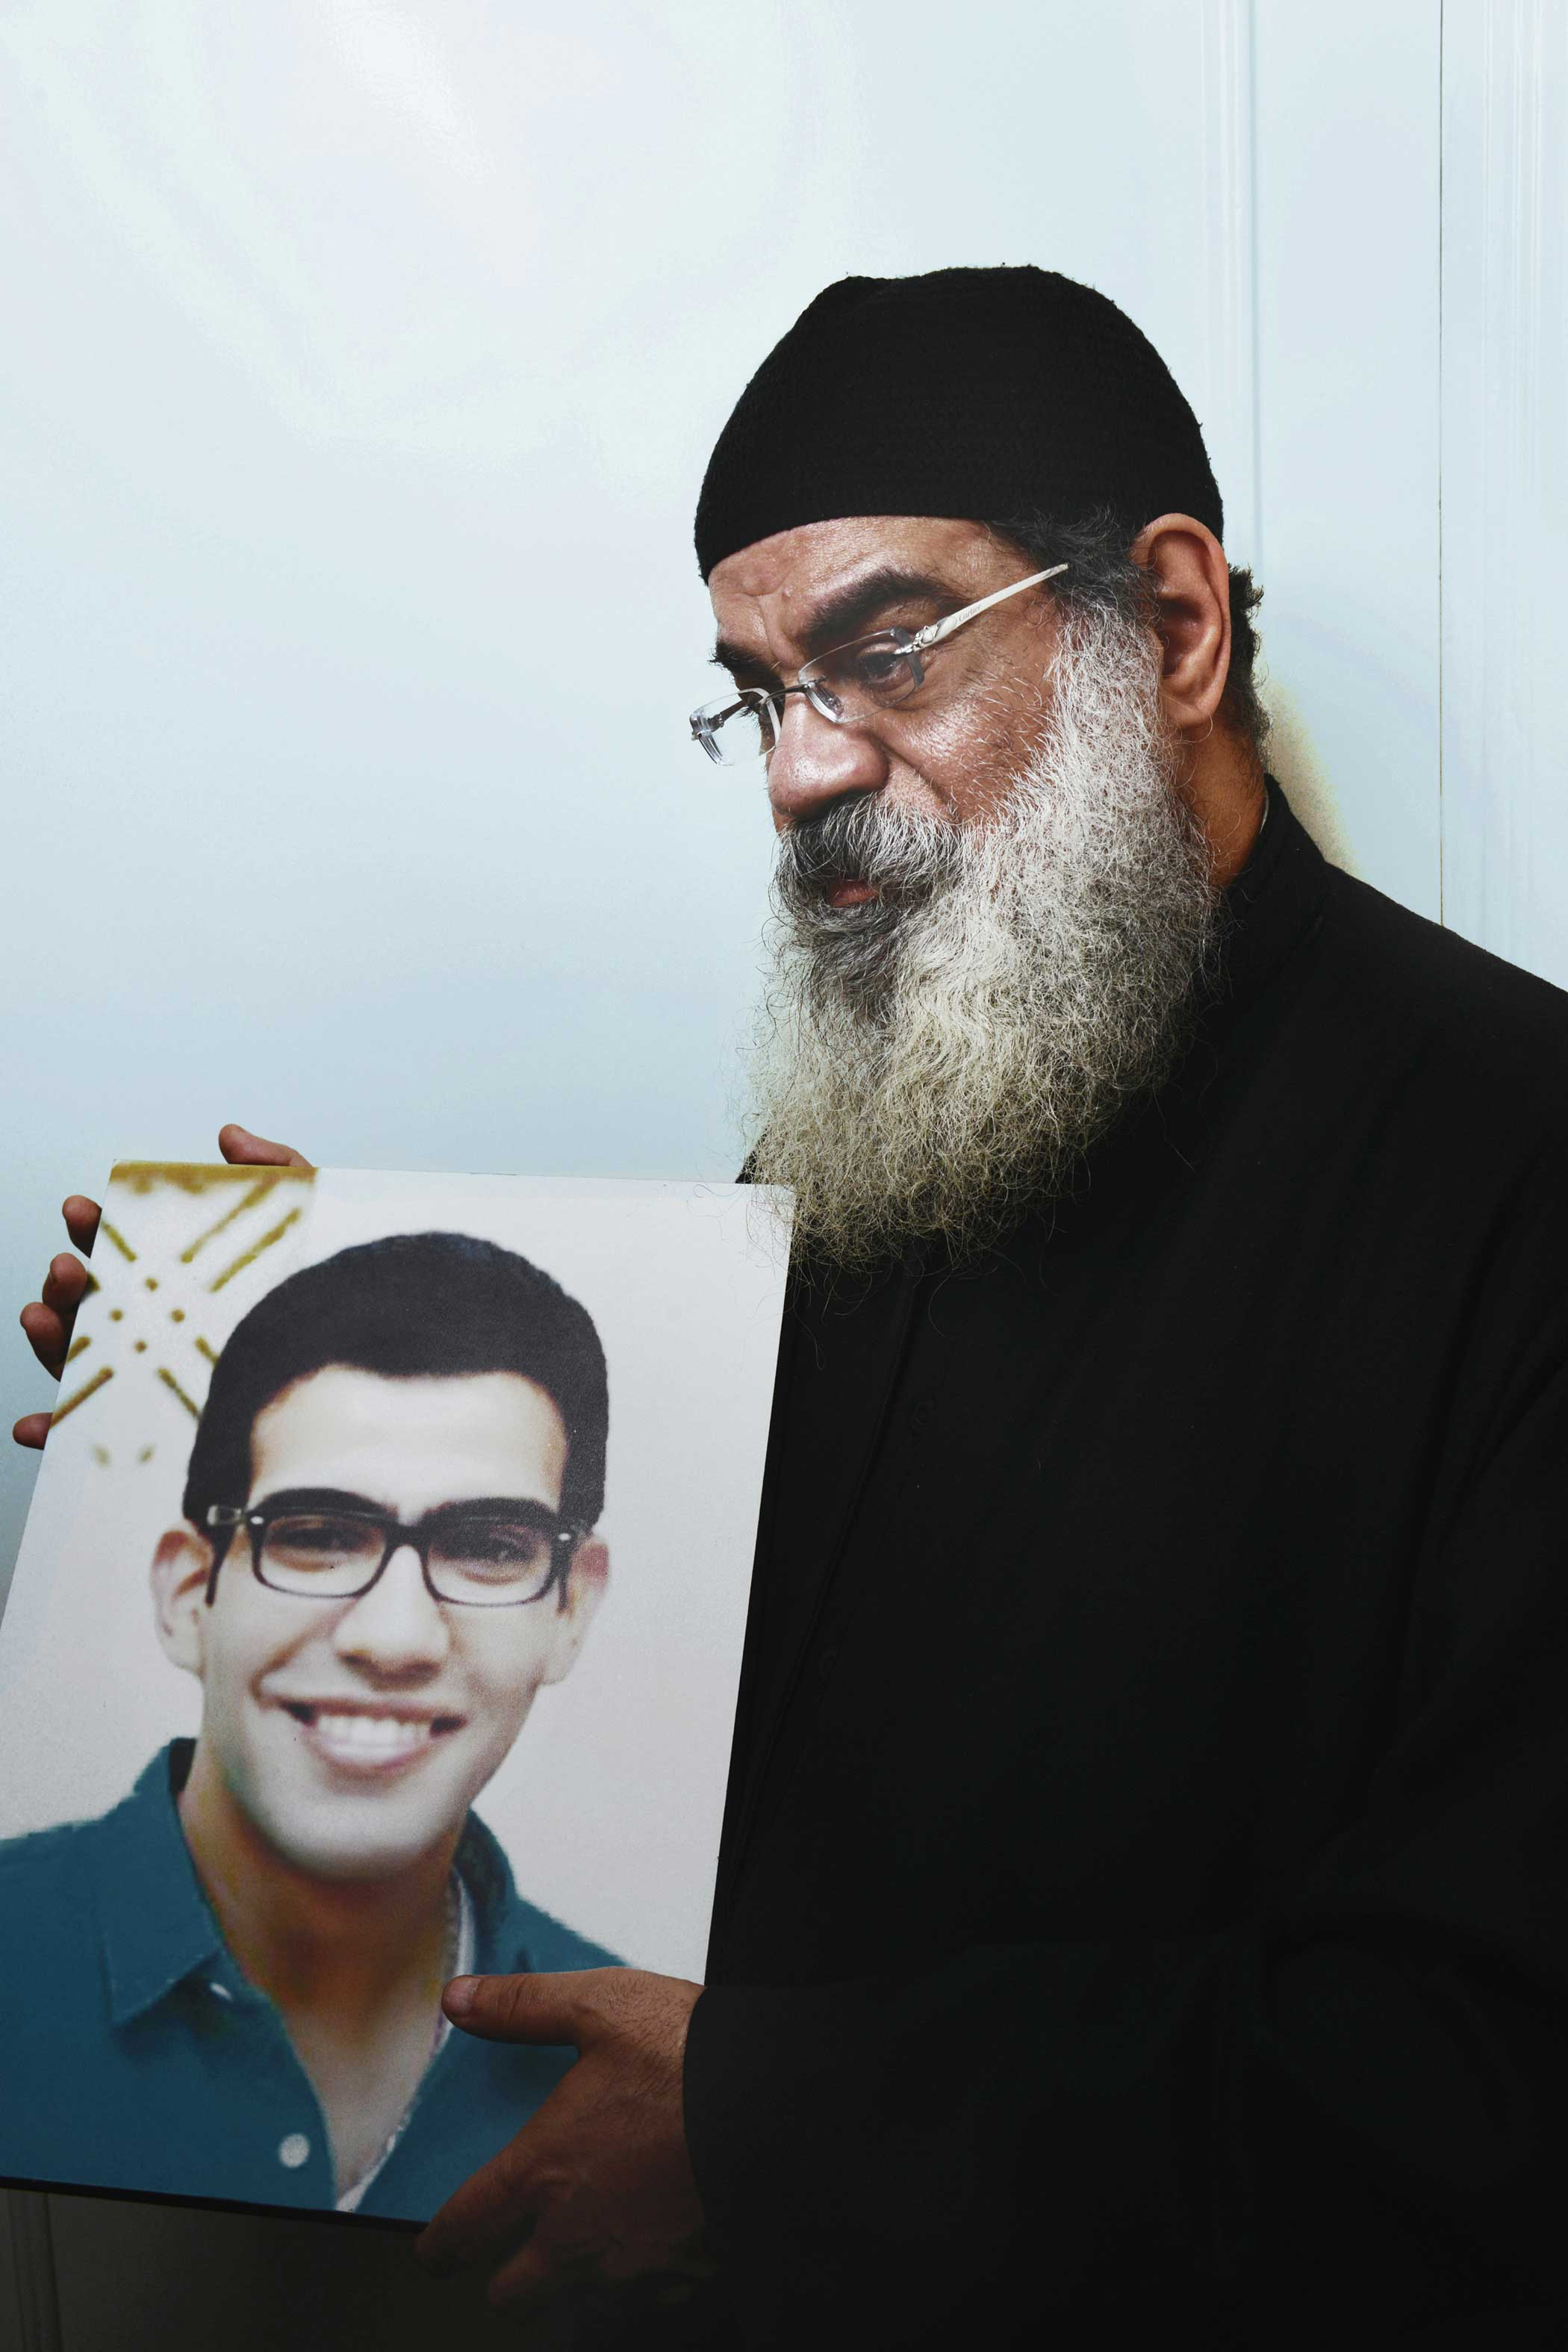 Father Daniel Maher, 53, a priest at St. George's church, holds a photo of his slain son Beshoy, 23, who died at the church bombing in Tanta, Egypt, on April 9, 2017.  Beshoy was in front of me the whole time during the Palm Sunday service. The moment I got up into the church's alter, the explosion happened,  Father Daniel said.  A [piece of] shrapnel got into his brain and his brother was set on fire.